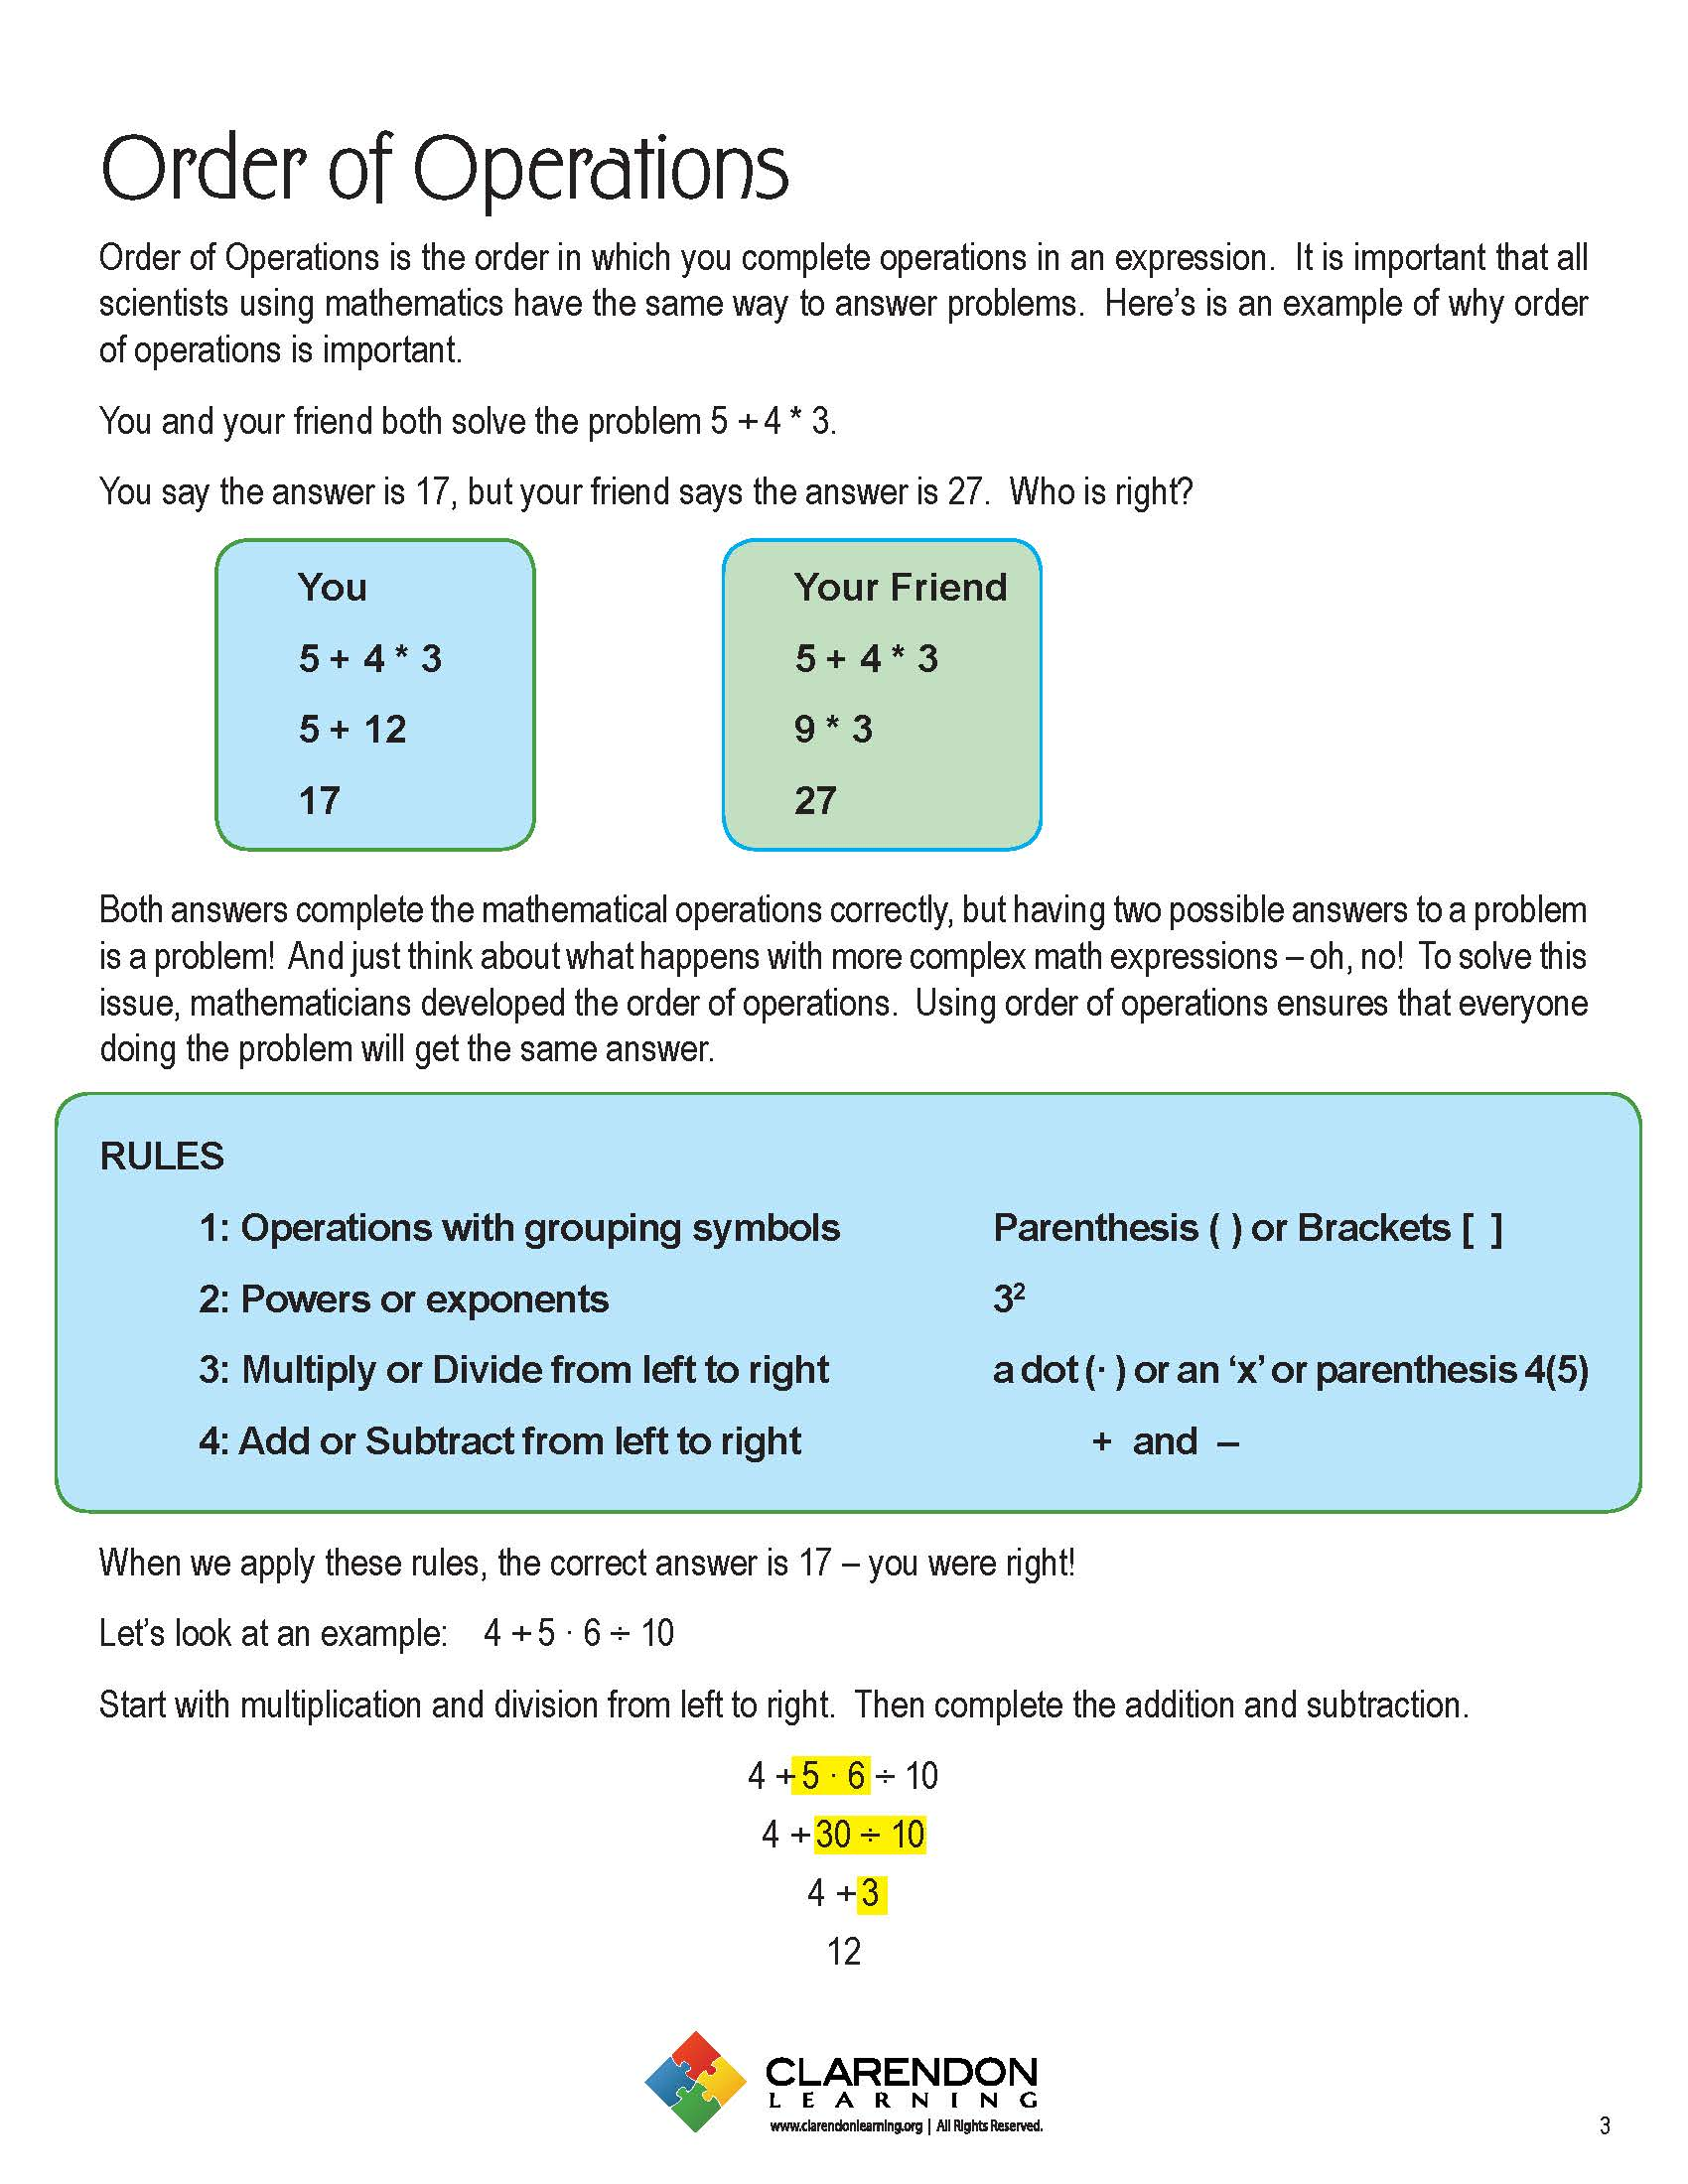 Order of operations lesson plan clarendon learning video resources donate now biocorpaavc Choice Image